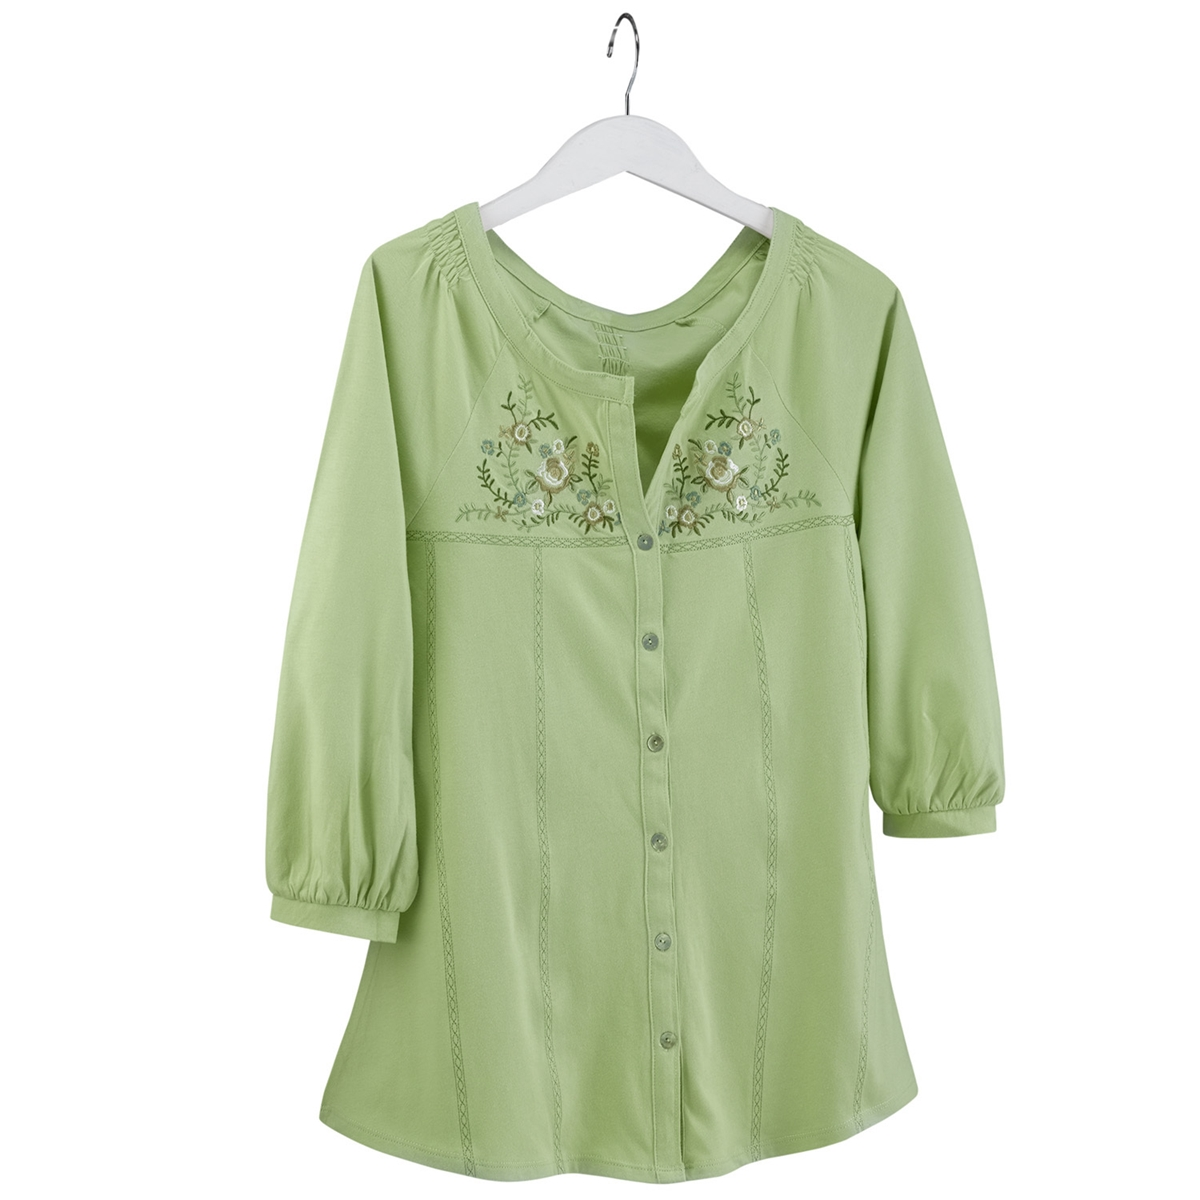 Embroidered Margarita Floral Tunic